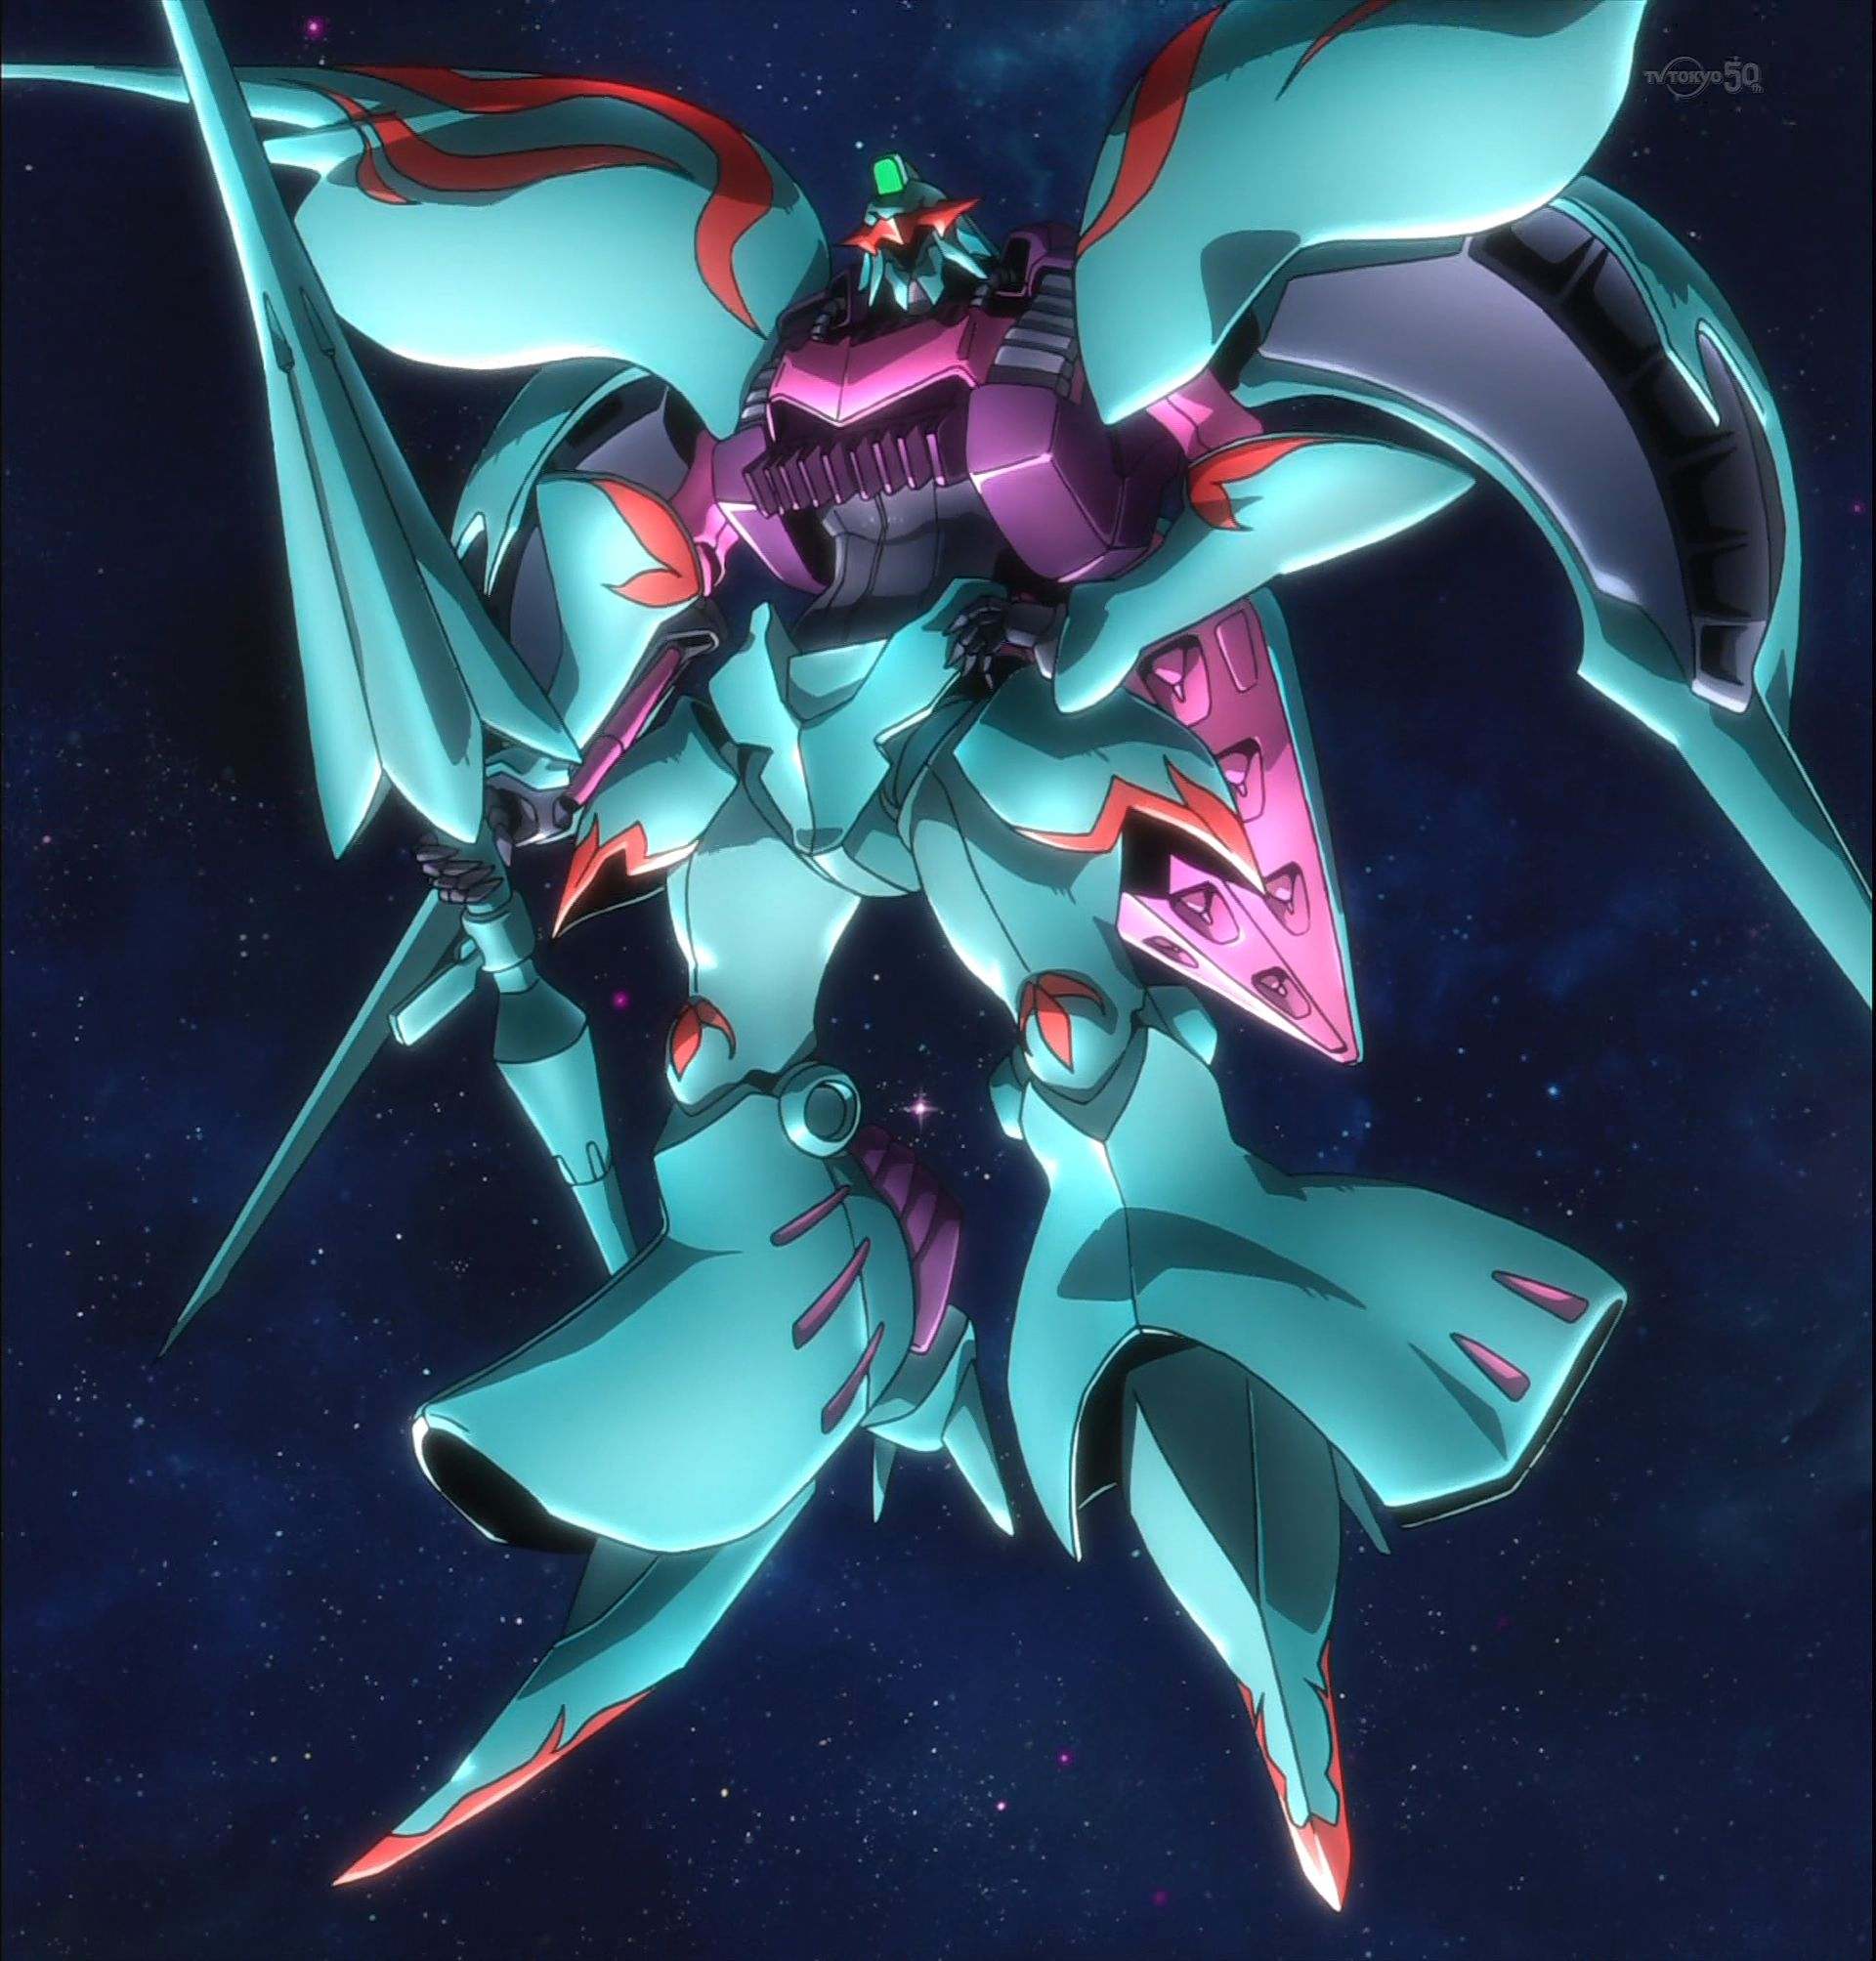 image qubeley the gundam wiki fandom powered by wikia. Black Bedroom Furniture Sets. Home Design Ideas